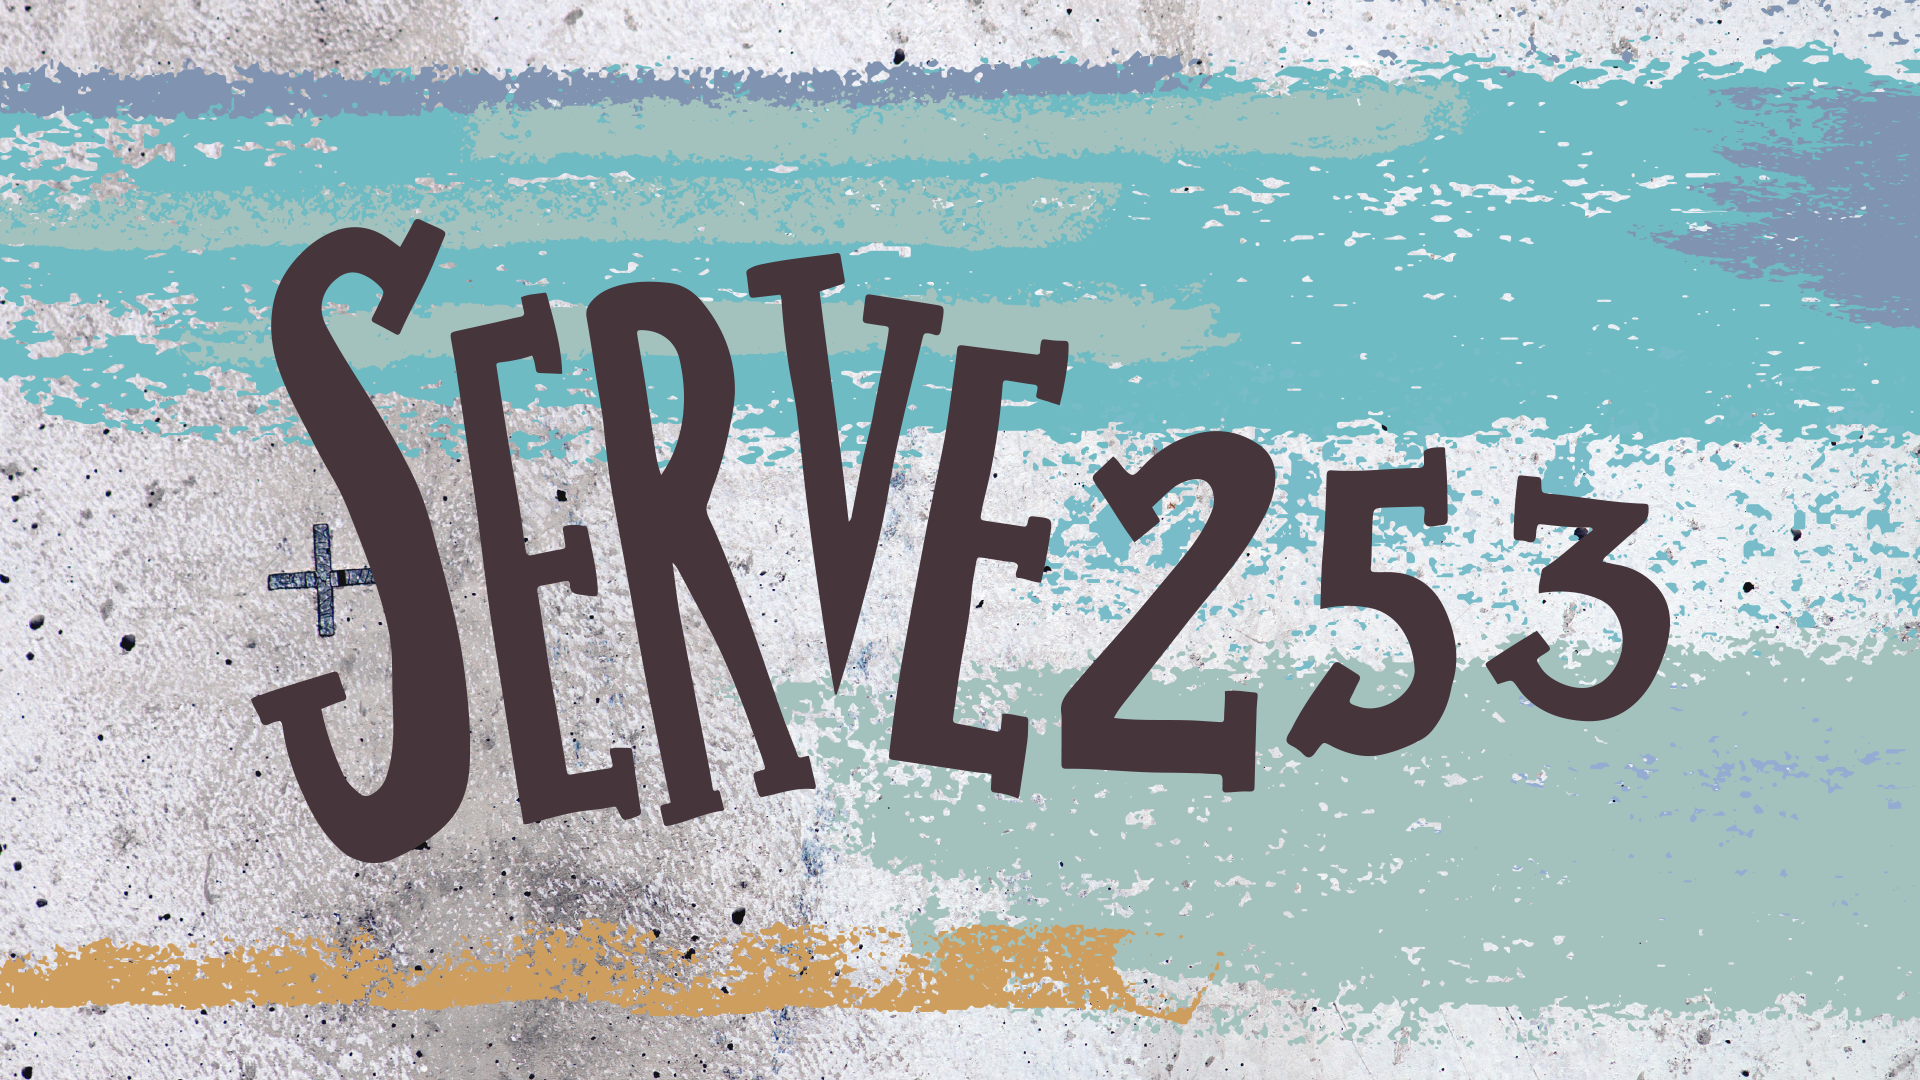 Join us for Serve253. Read on to learn more.